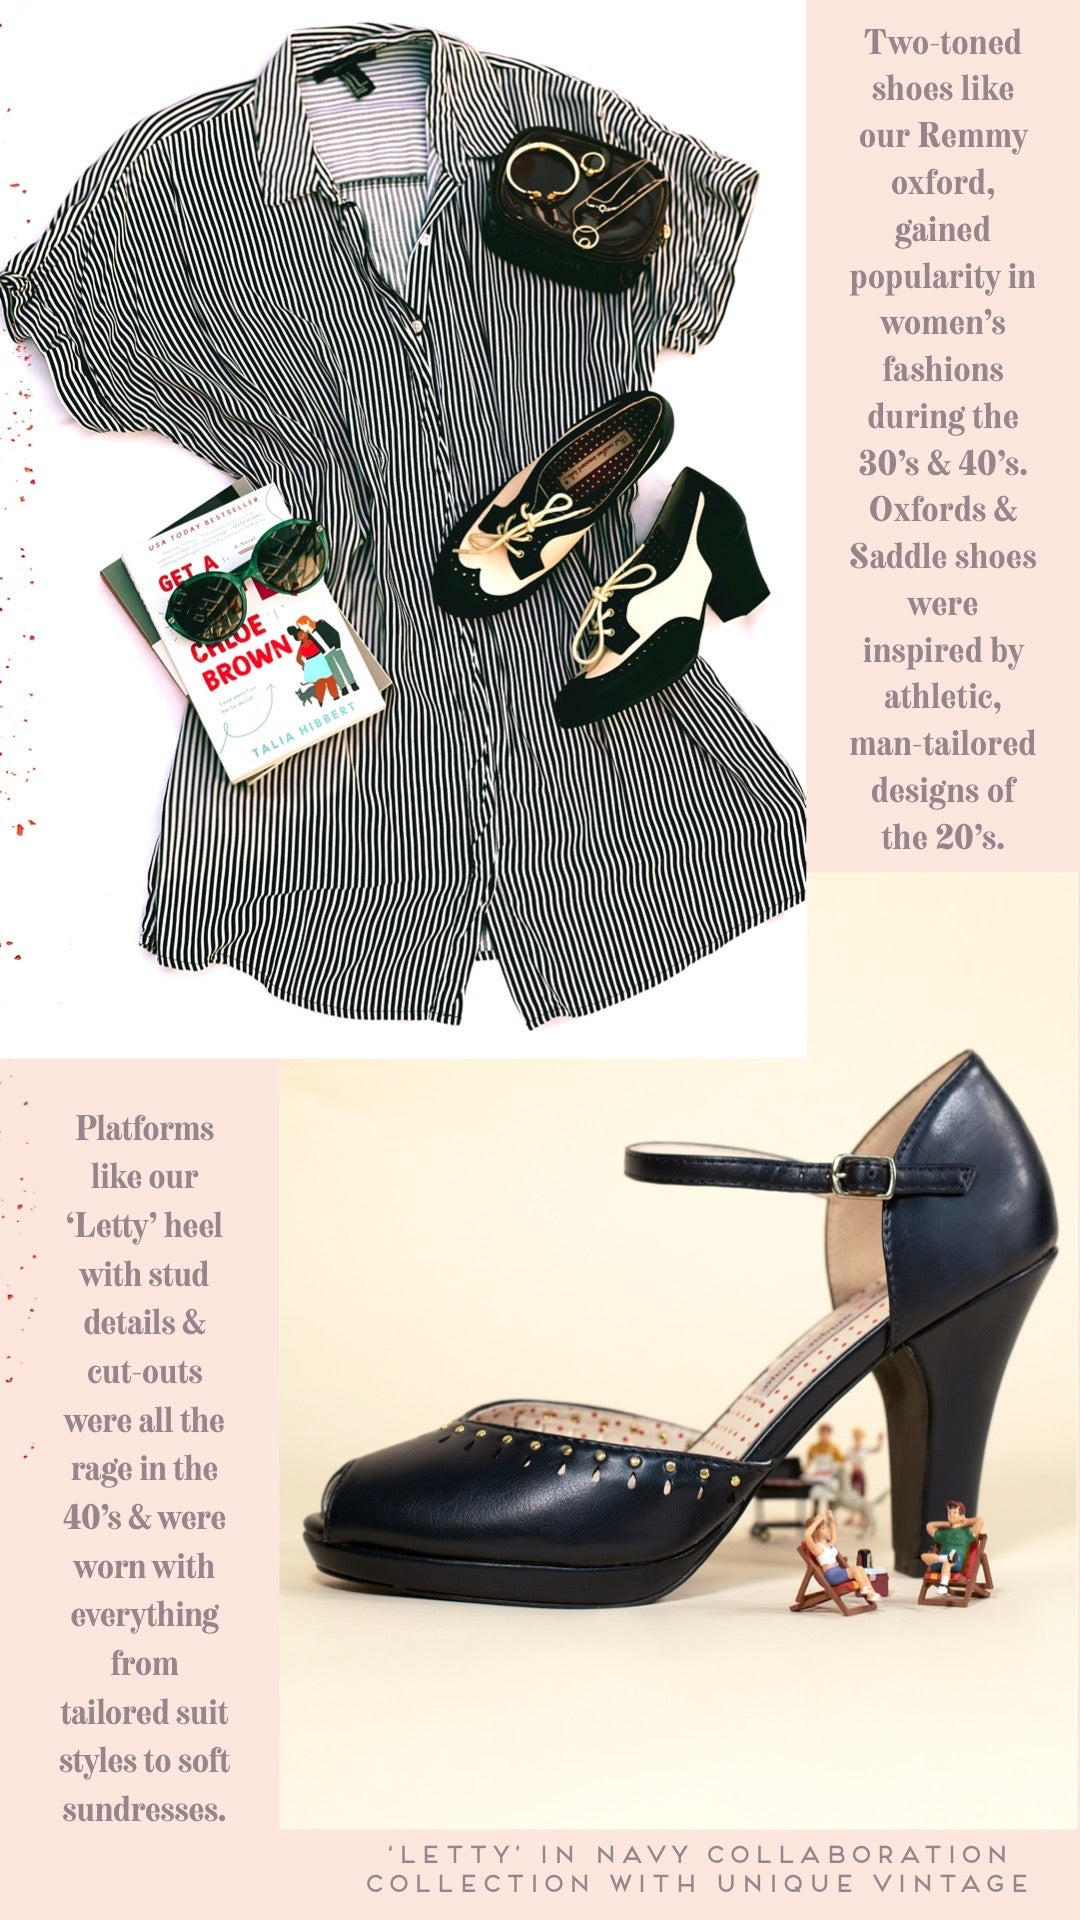 photo: flat lay from above, vertical stripe romper, small glossy jewelry bag holds gold jewelry in the top right corner, under it rests the 'Remmy' shoe style, a two-toned short blocky heel oxford in black & white. to the left of the shoes is a stack of books with a pair of sunglasses.  caption: two-toned shoes like our remmy oxford, gained popularity in women's fashions during the 30's & 40's. oxfords & saddle shoes were inspired by athletic, man-tailored designs of the 20's.   platforms like our 'letty' heel with stud details & cut-outs were al the rage in the 40's & were worn with everything from tailored suit styles to soft sundresses.  photo: close up photo of 'Letty' navy blue peep toe platform with miniuture human toys picnic around the arch of the letty heel, photo by @uniquevintage. caption: letty' in navy collaboration collection with unique vintage